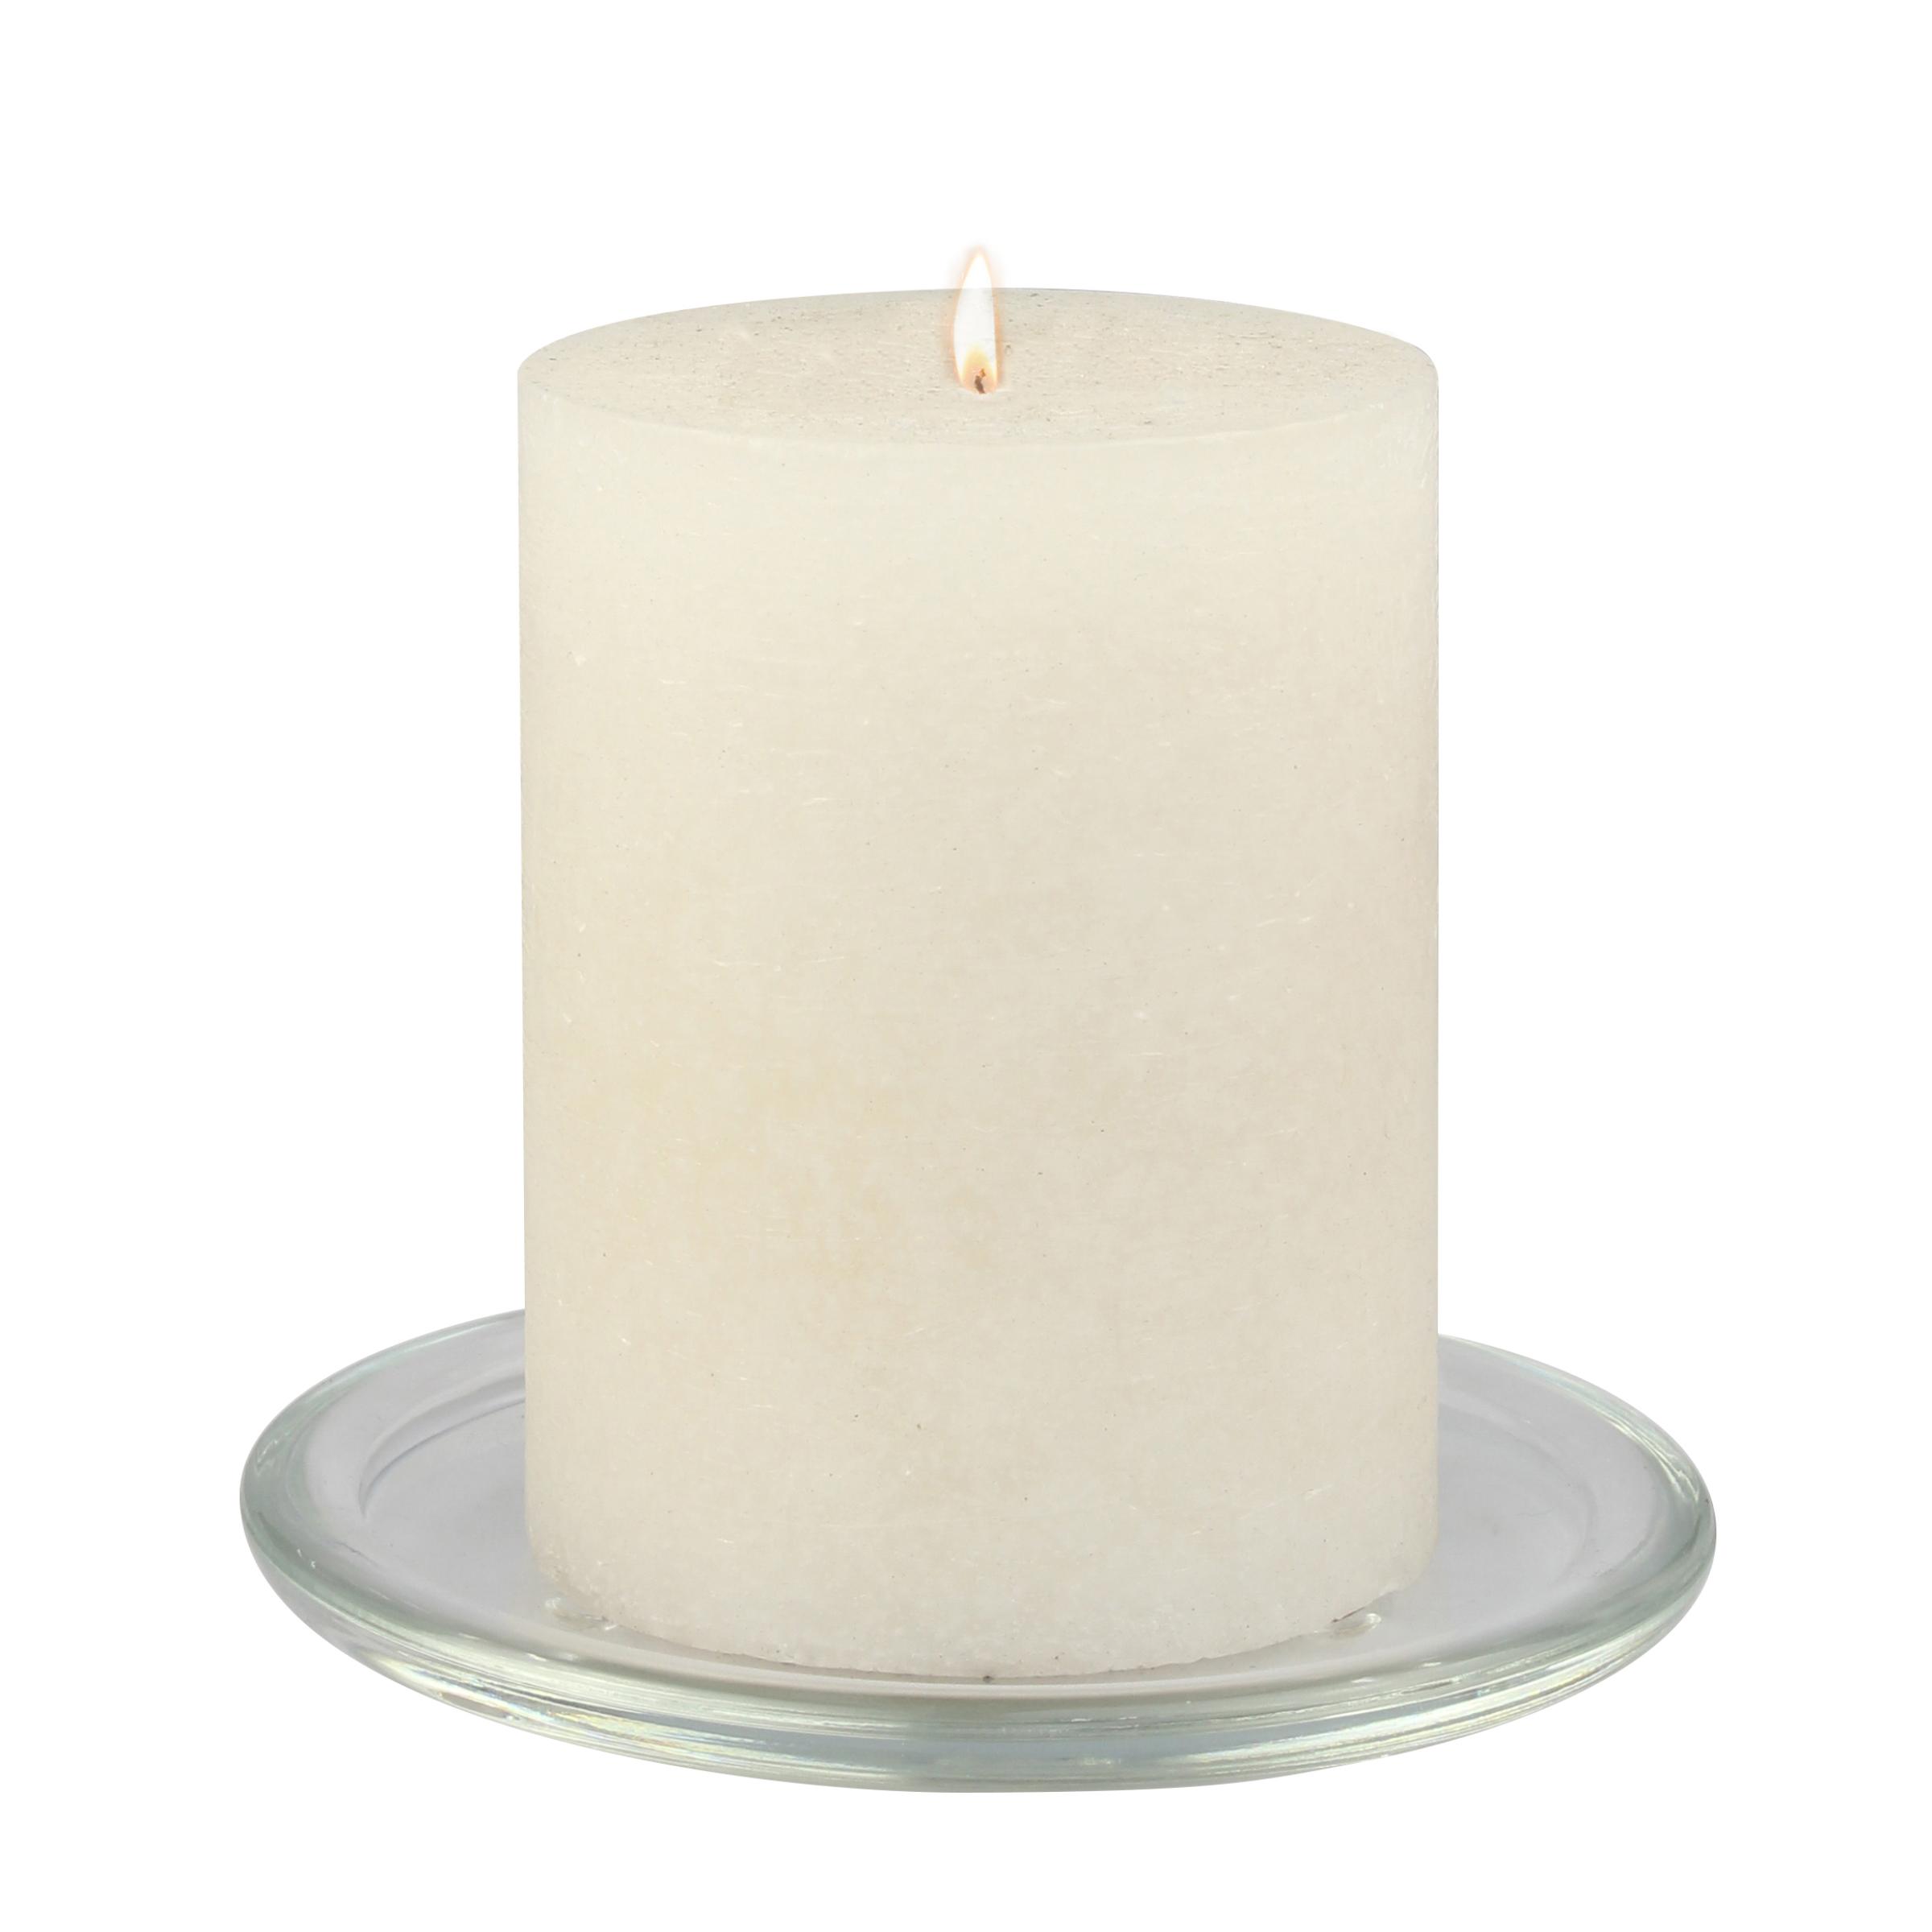 Mainstays Round Glass Plate with Clear Feet, Votive Candle Holder